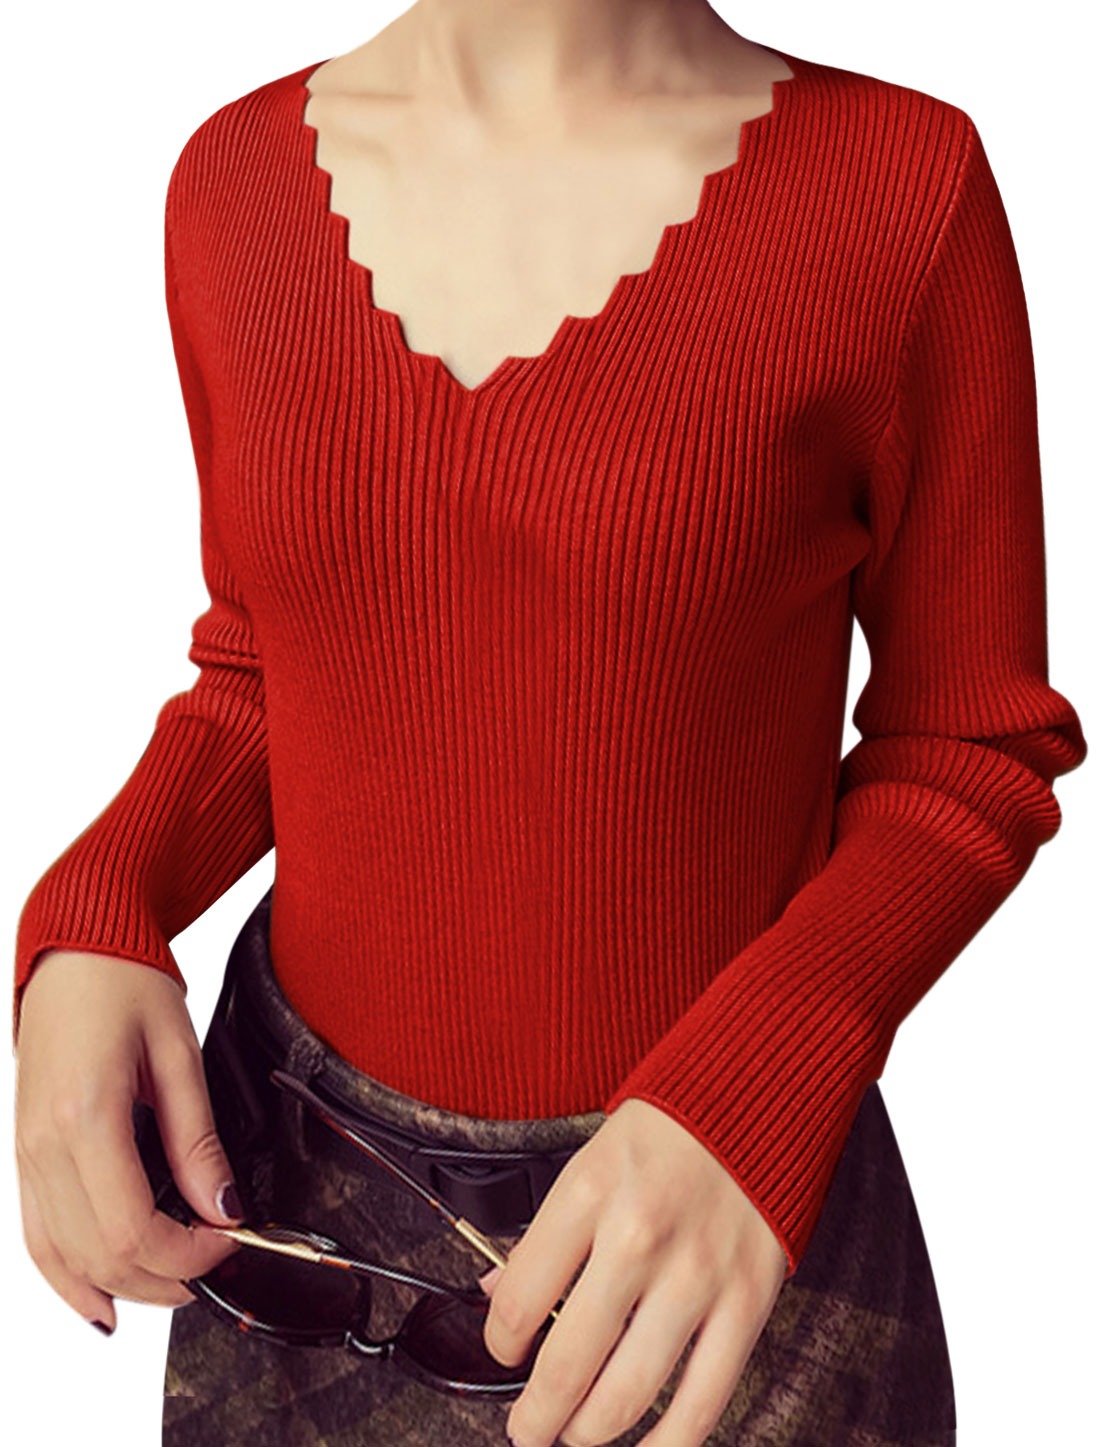 Women Scalloped V Neck Long Sleeves Slim Fit Knit Top Red XS